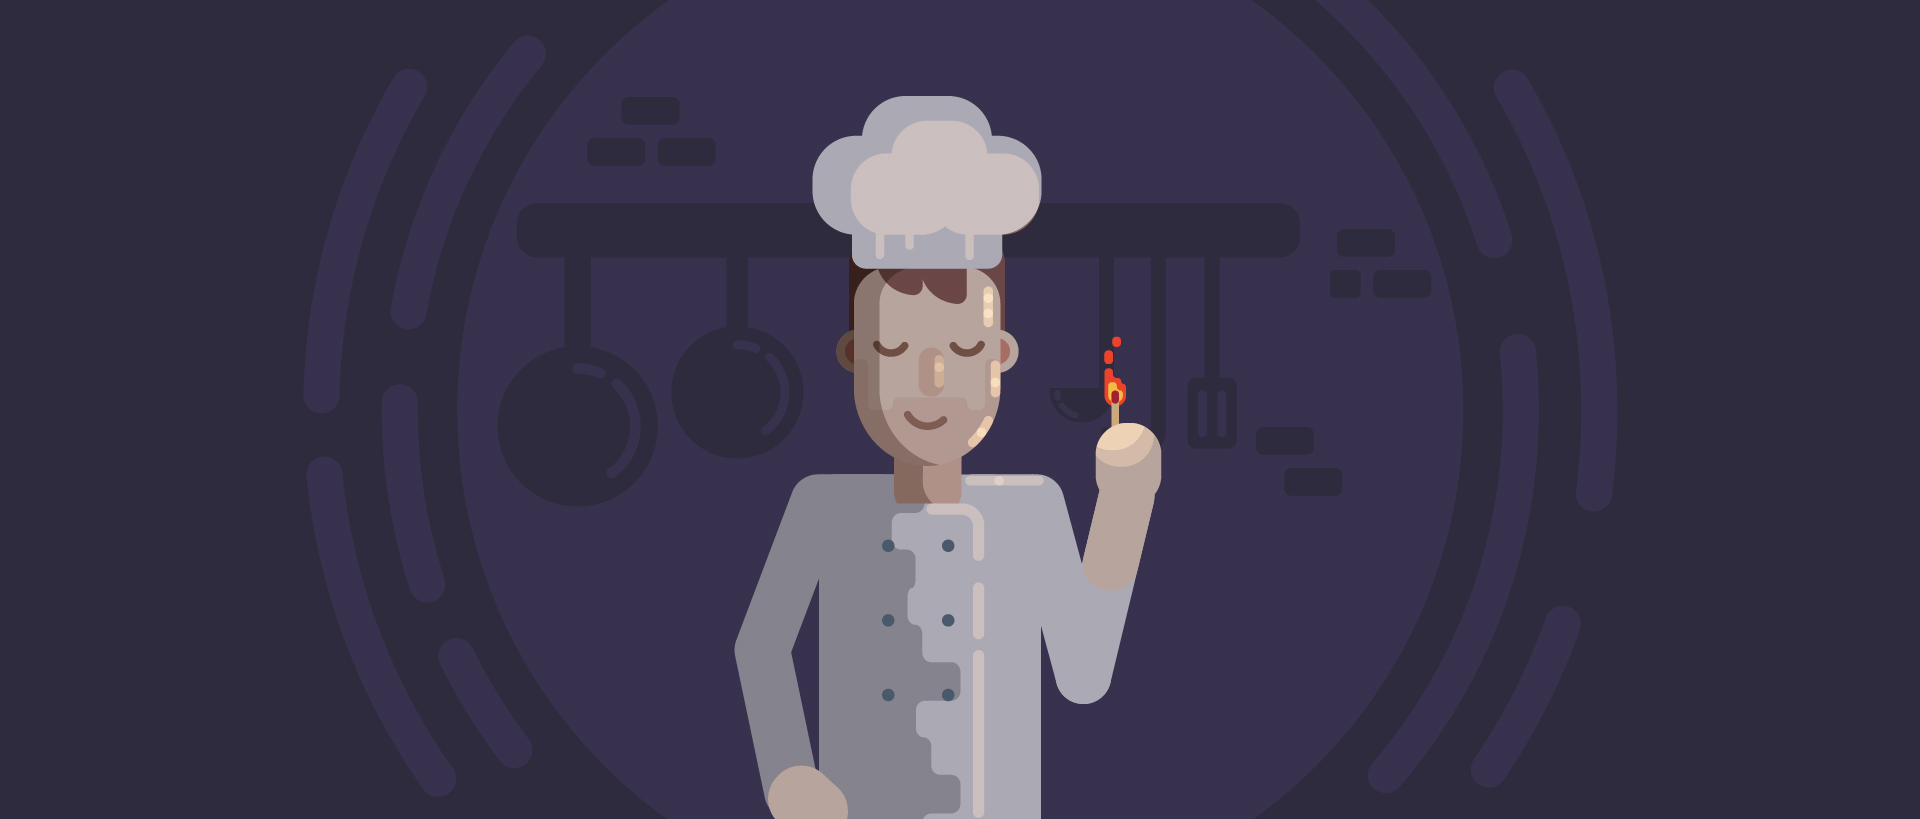 Dark Kitchens: The Next Generation of Food Delivery Service